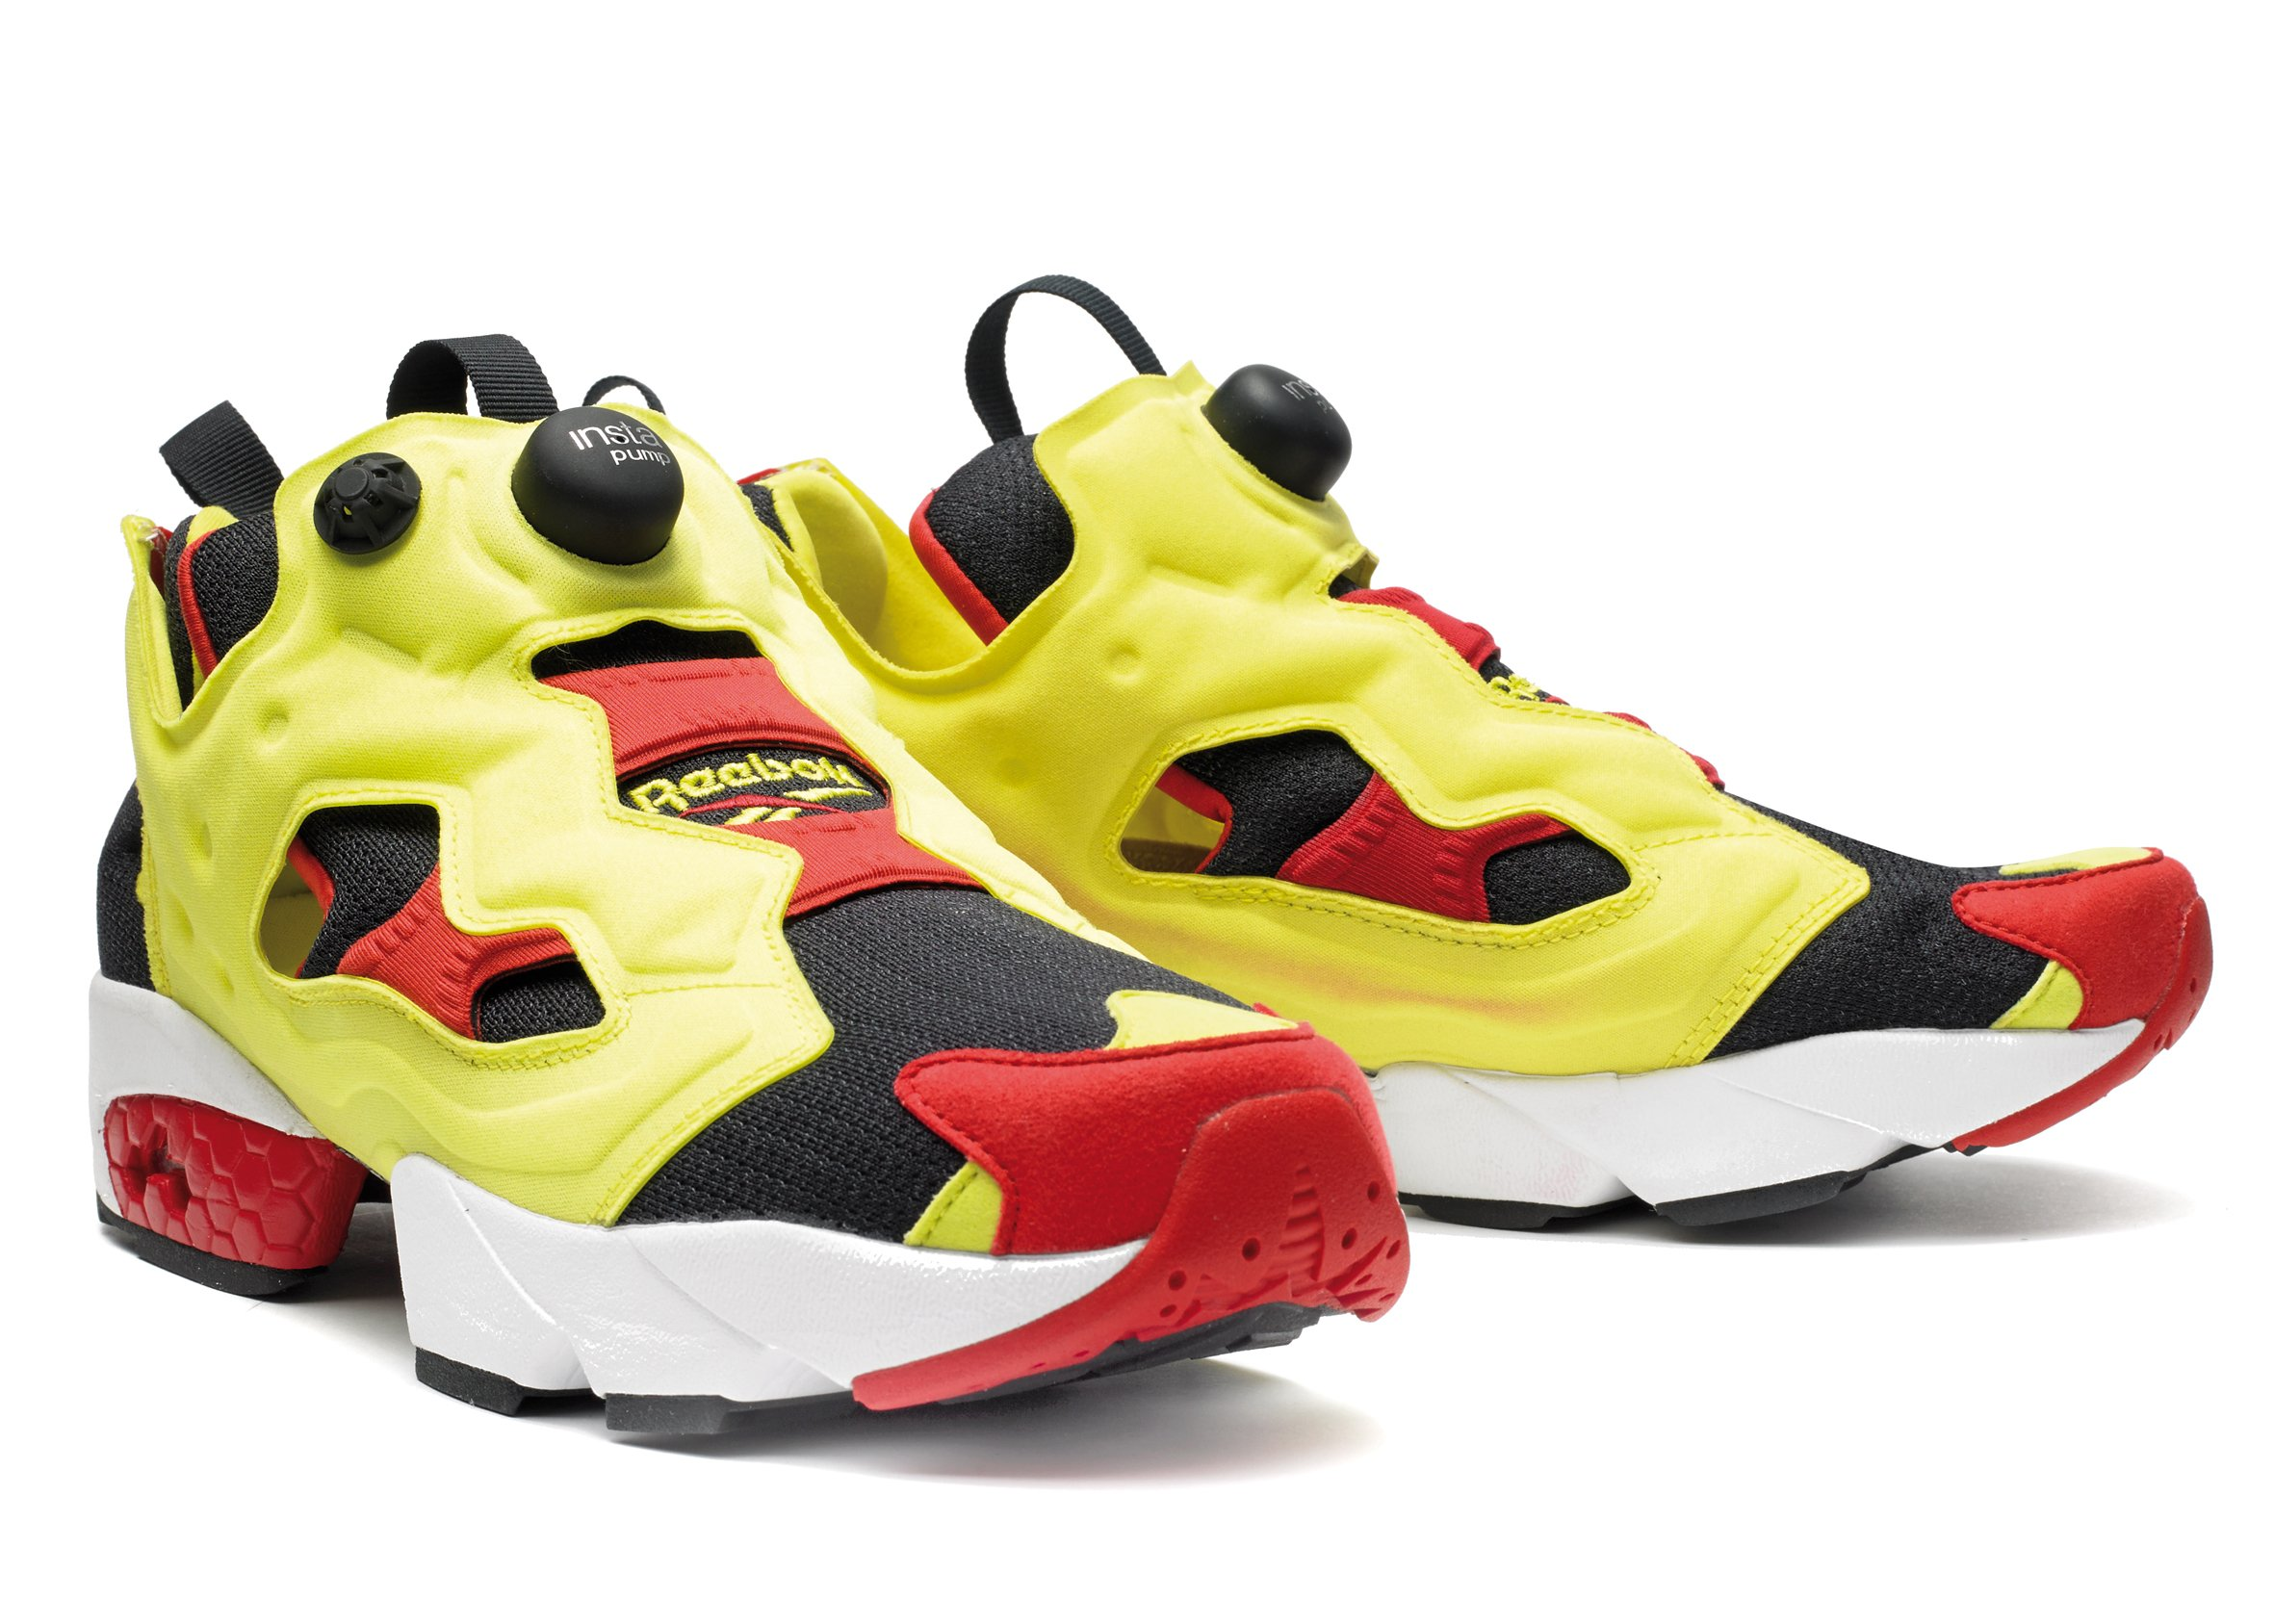 reebok insta pump fury og 39 citron 39 official images sneakerfiles. Black Bedroom Furniture Sets. Home Design Ideas